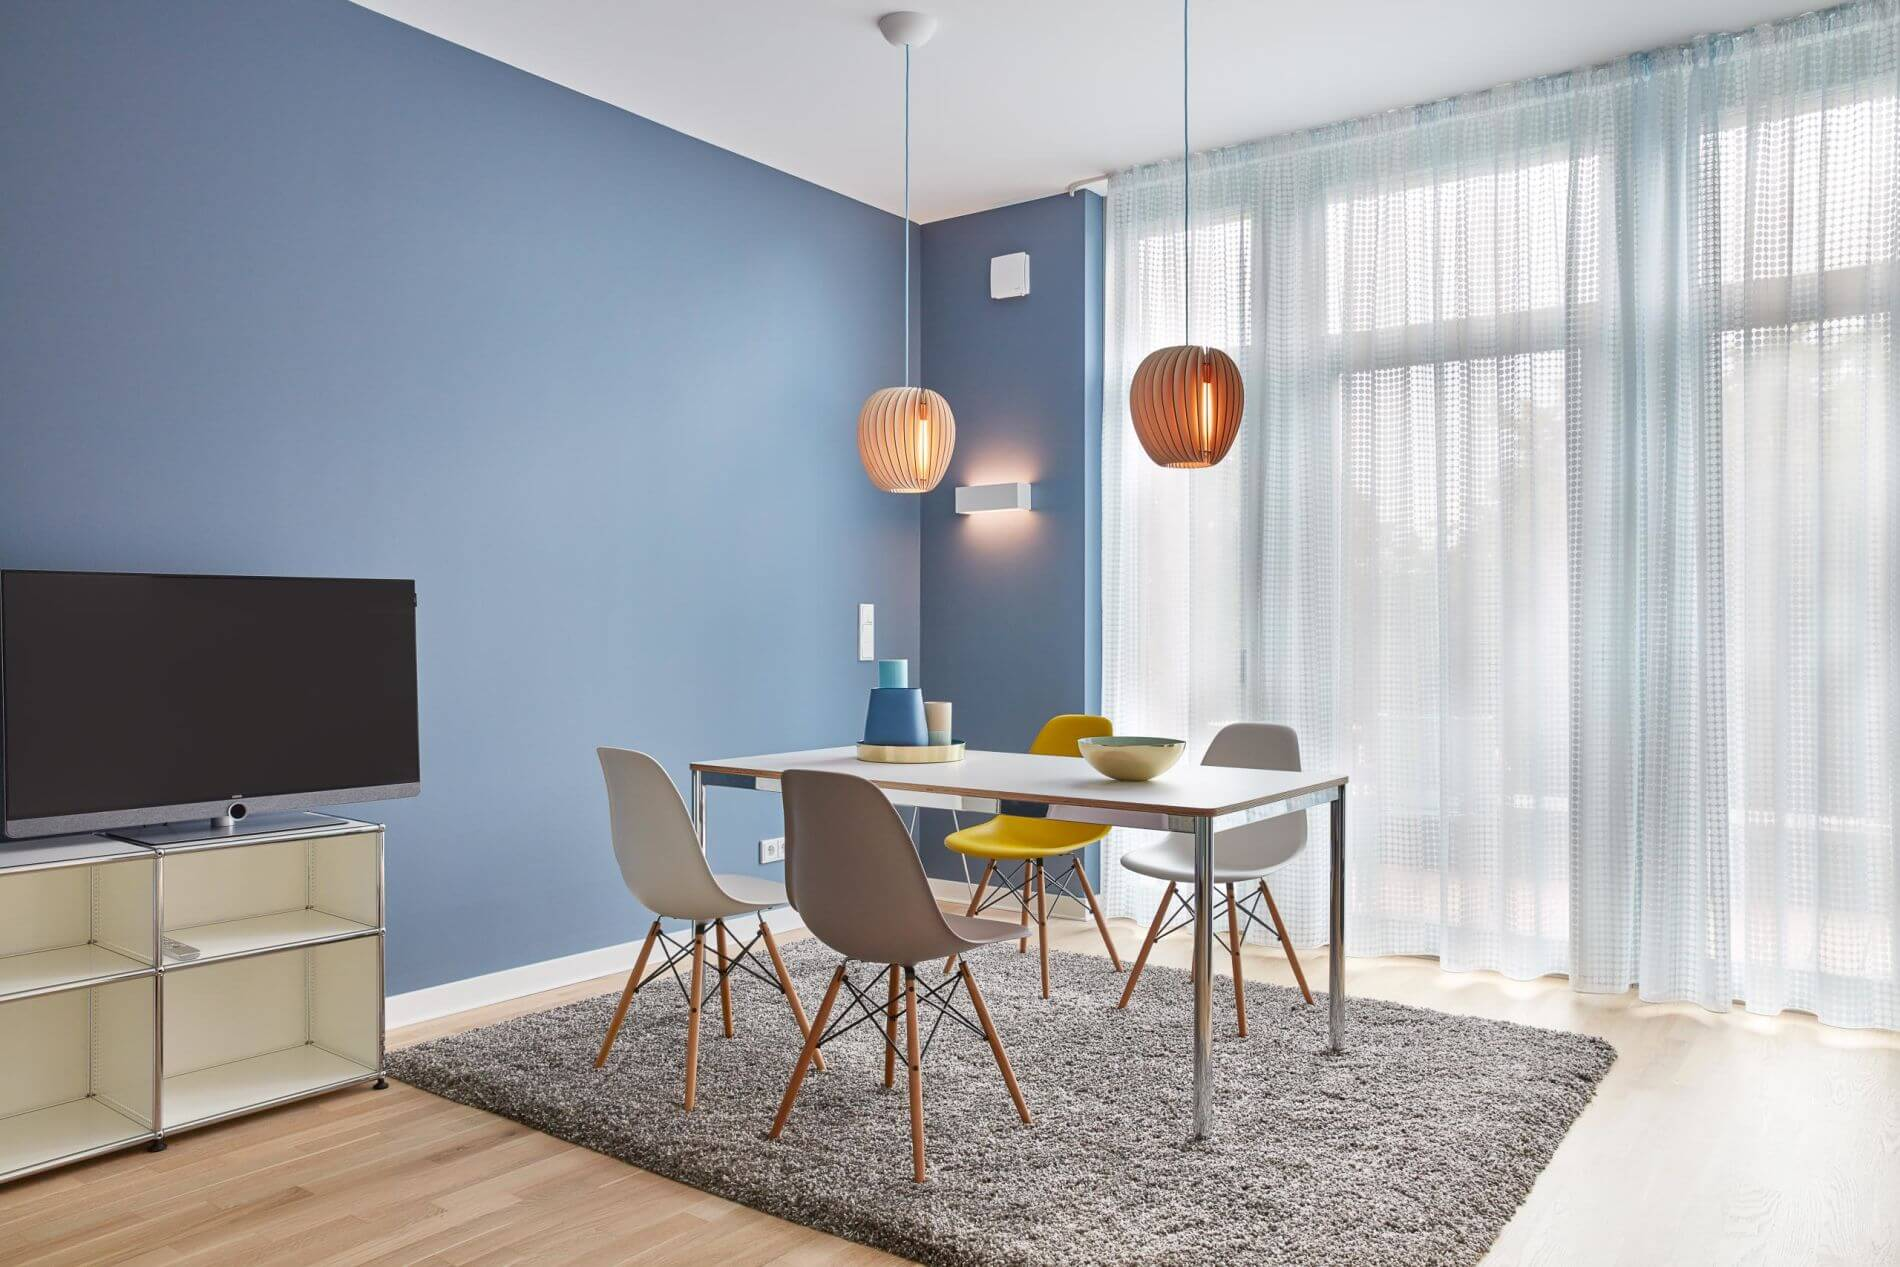 Serviced 1 bedroom flat in Eiswerder Island, Berlin that allows pets